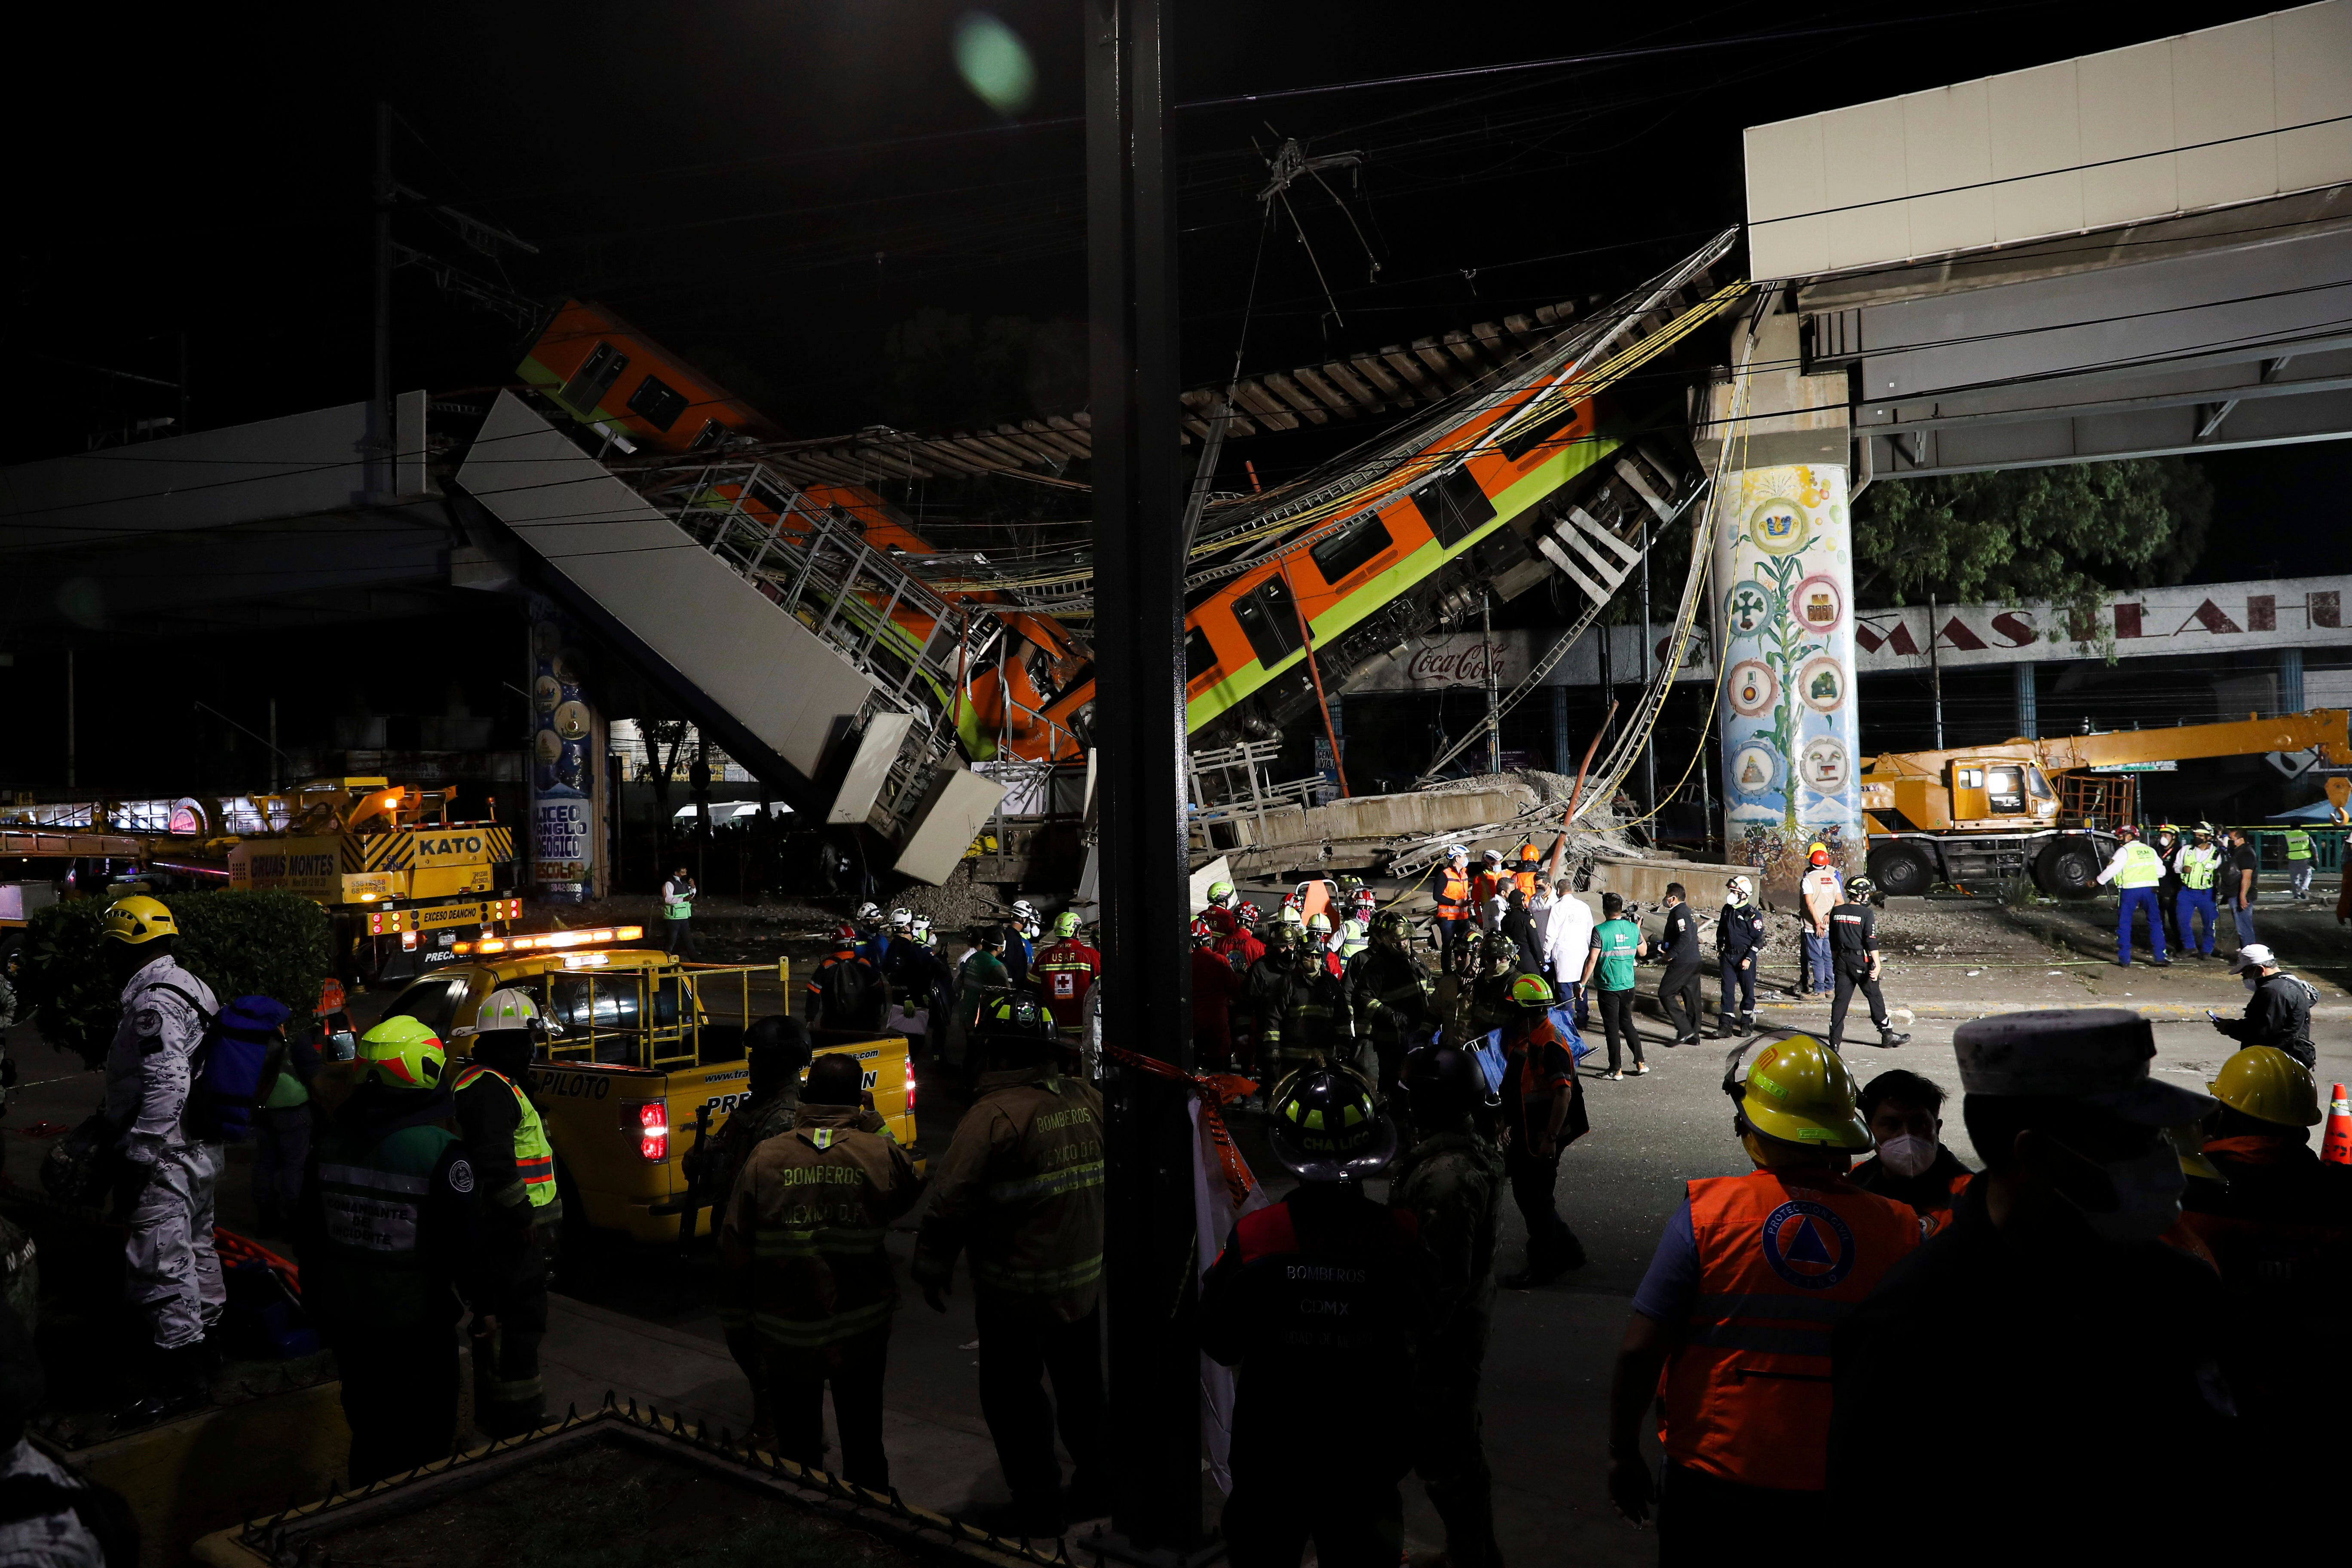 No impunity for anyone : Mexican president promises investigation after train overpass collapse kills at least 23